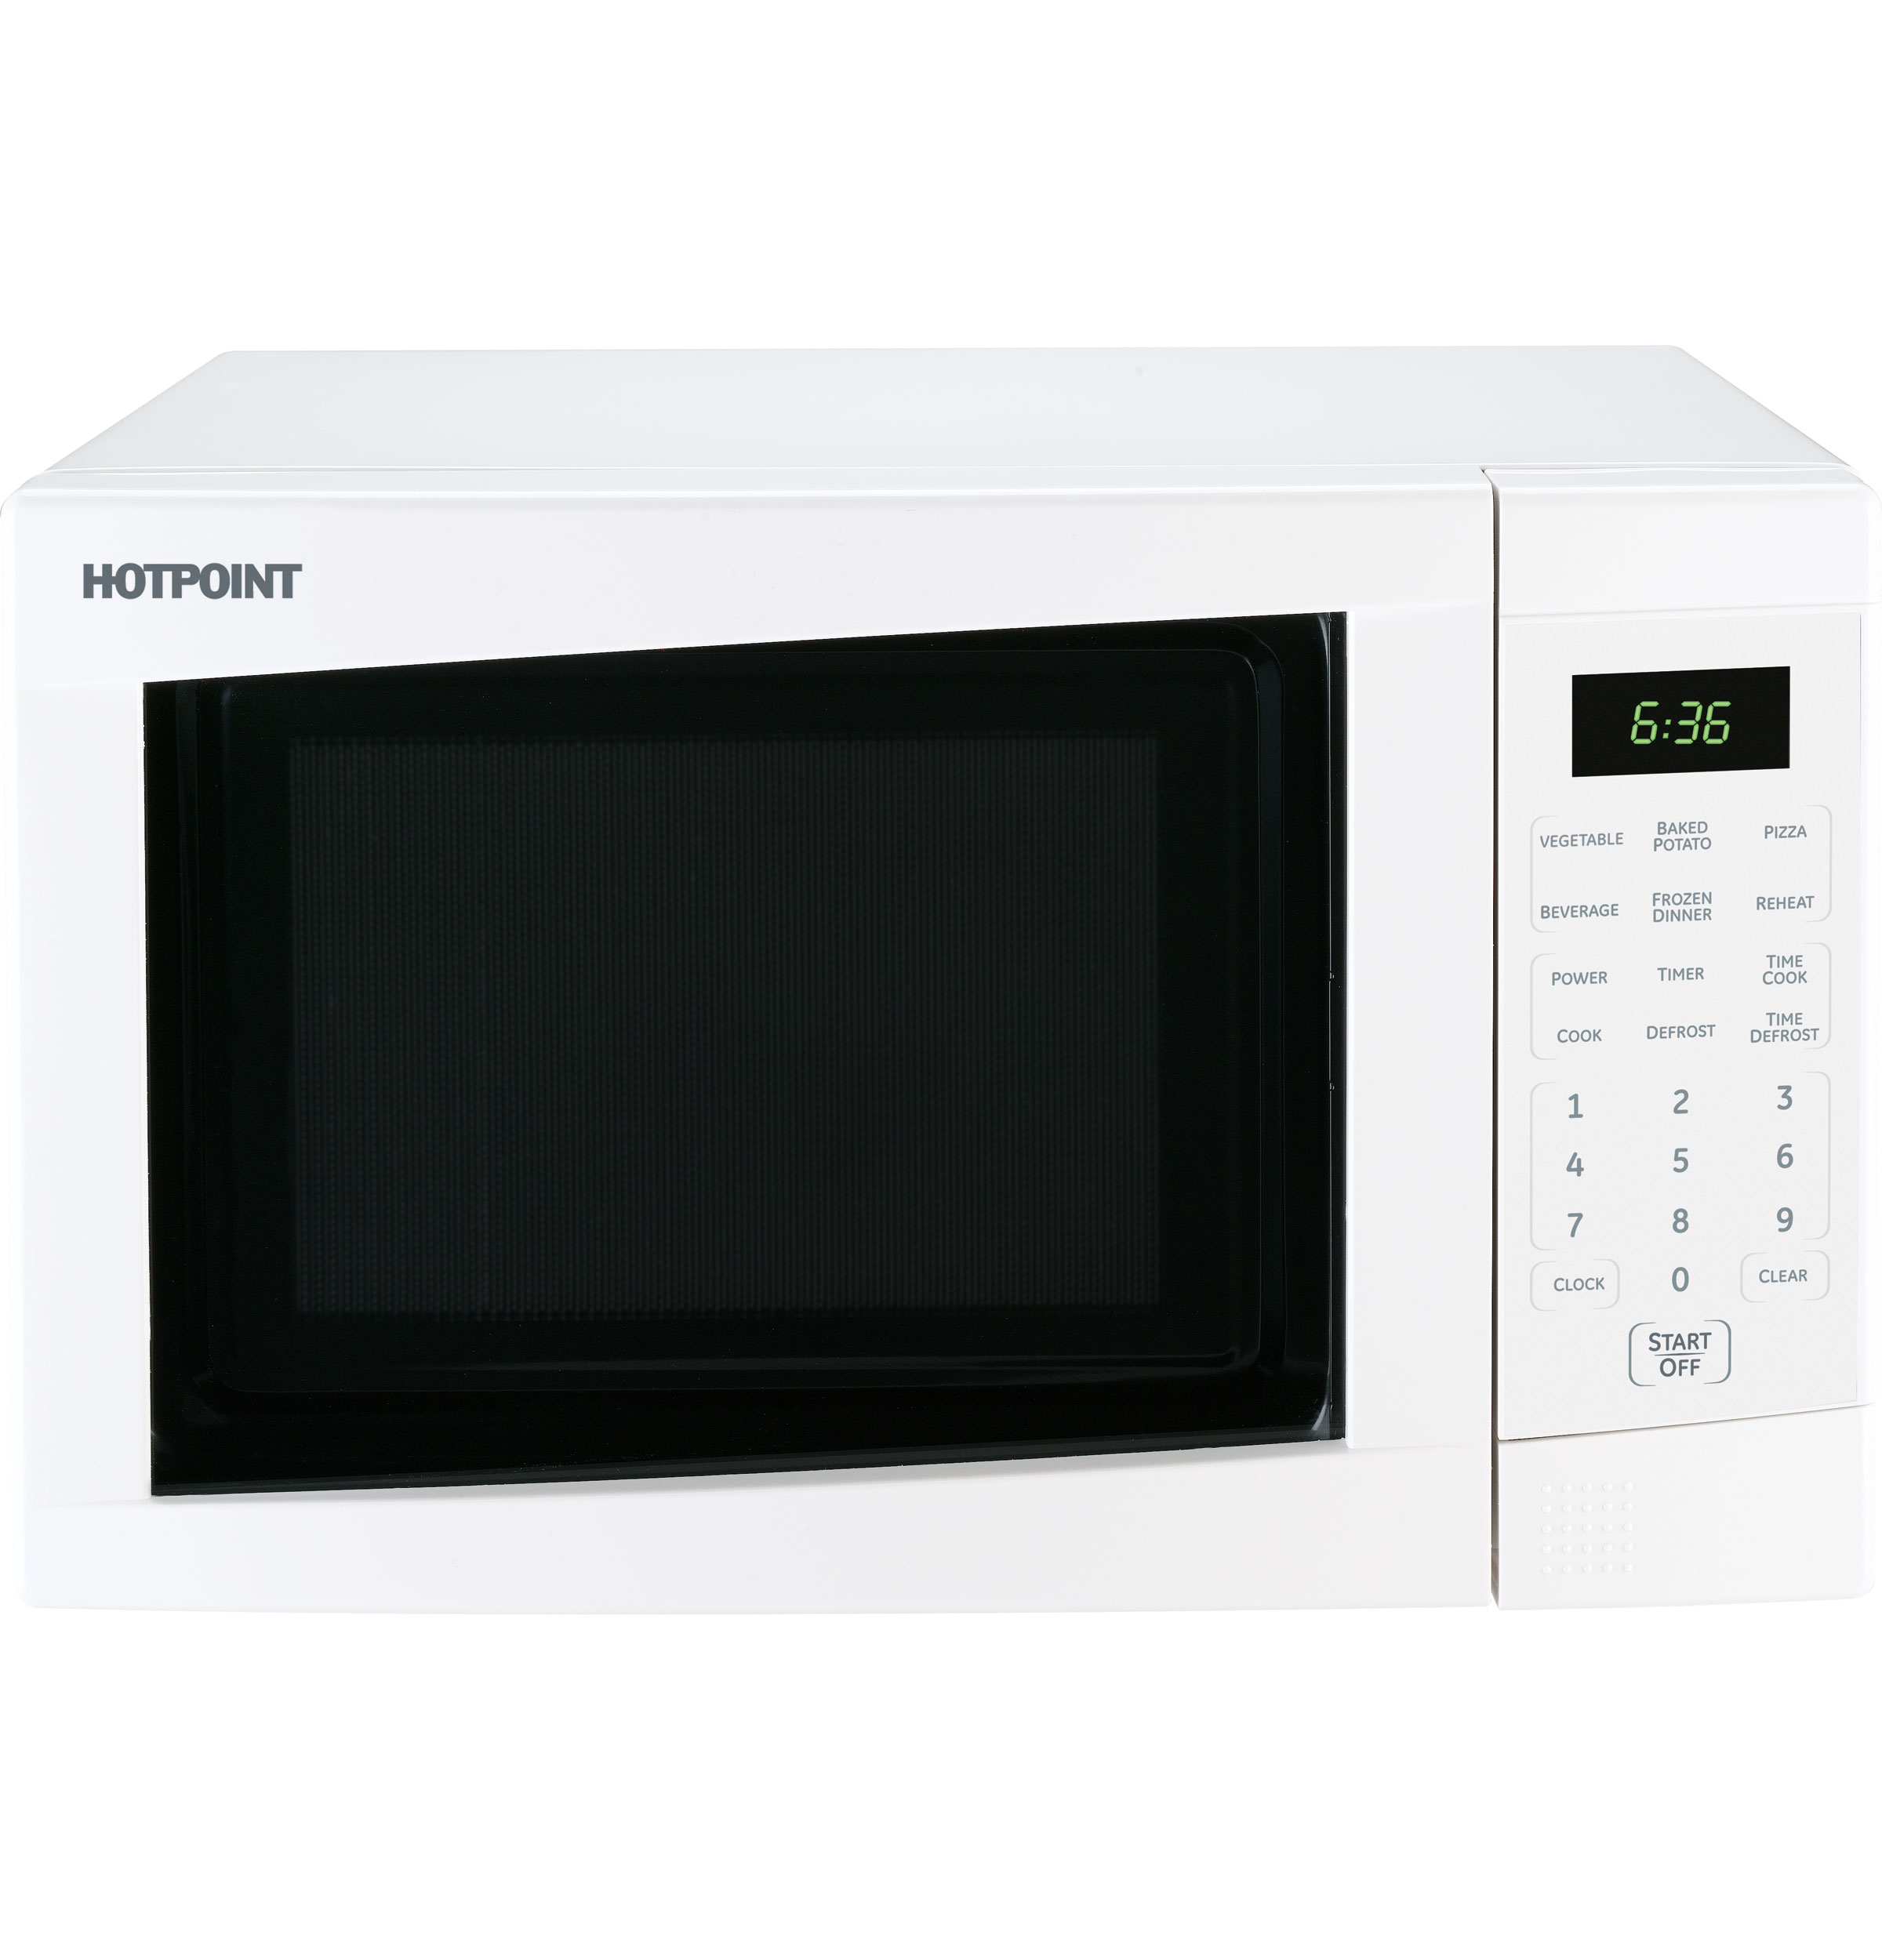 Hotpoint Countertop Microwave : JES636WK - Hotpoint? Countertop Turntable Microwave Oven - The ...